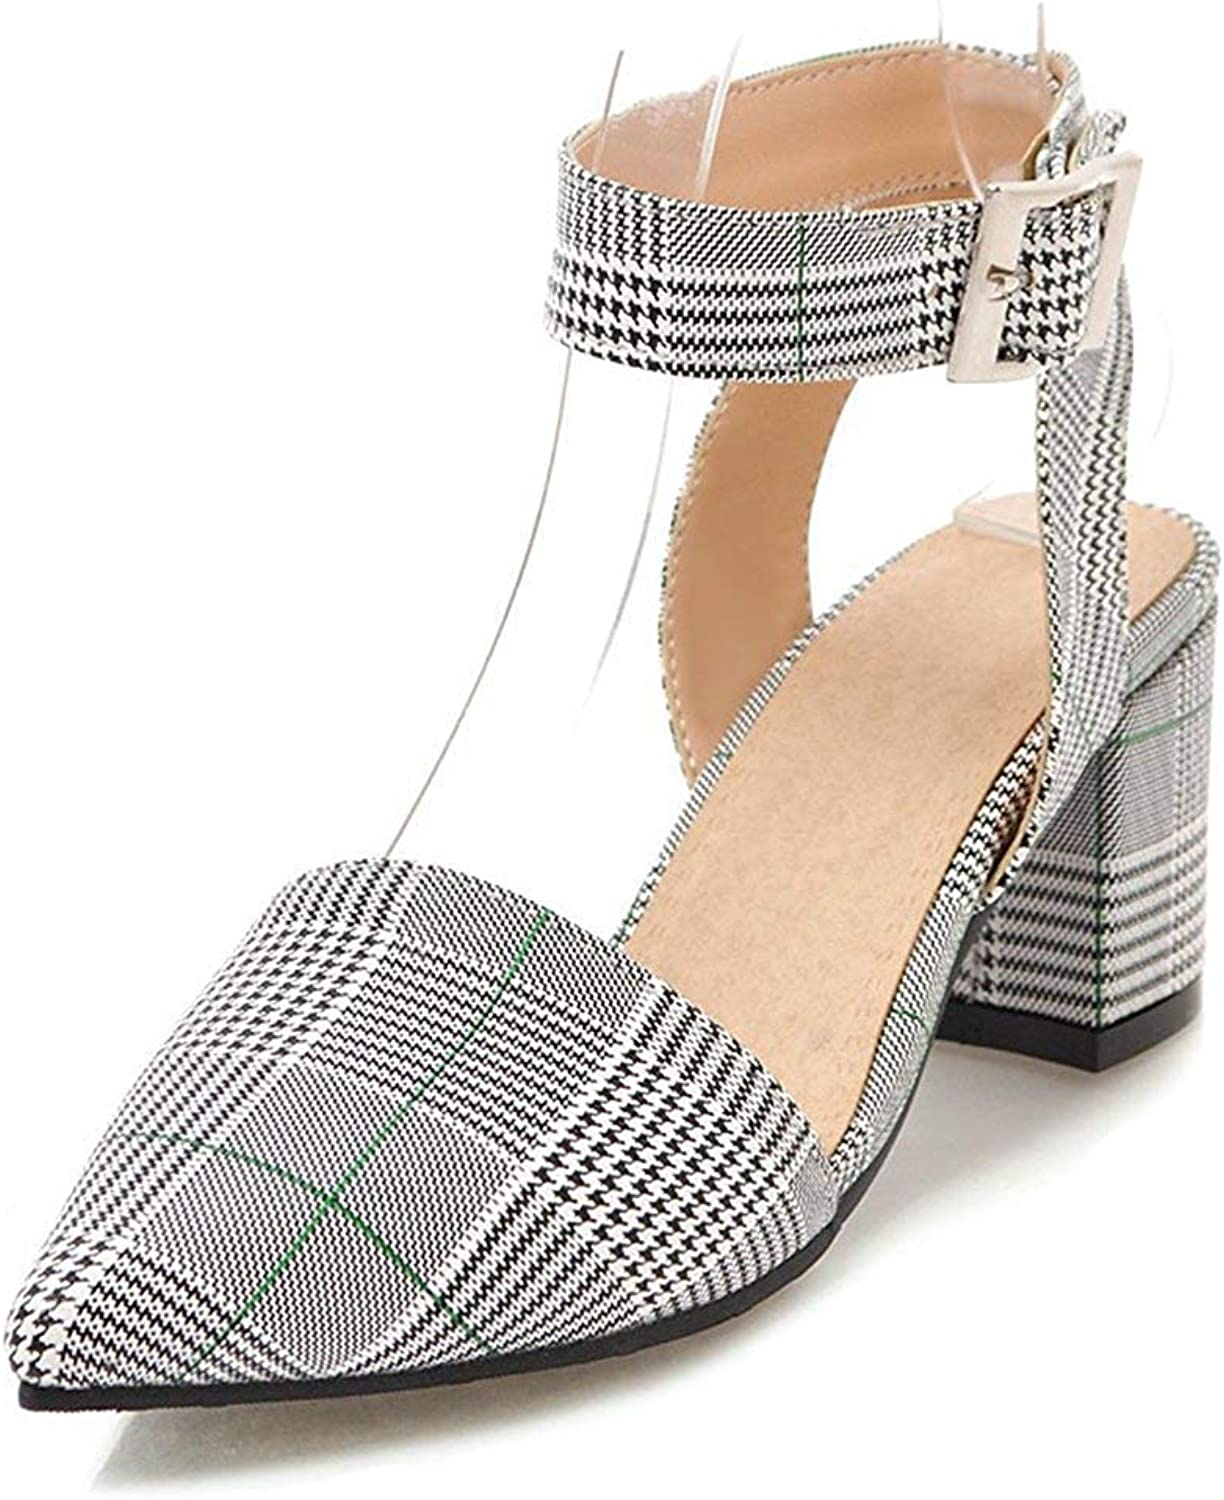 Unm Women's Closed Toe Sandals with Ankle Strap - Checkered Buckled Chunky - Mid Heel Fashion